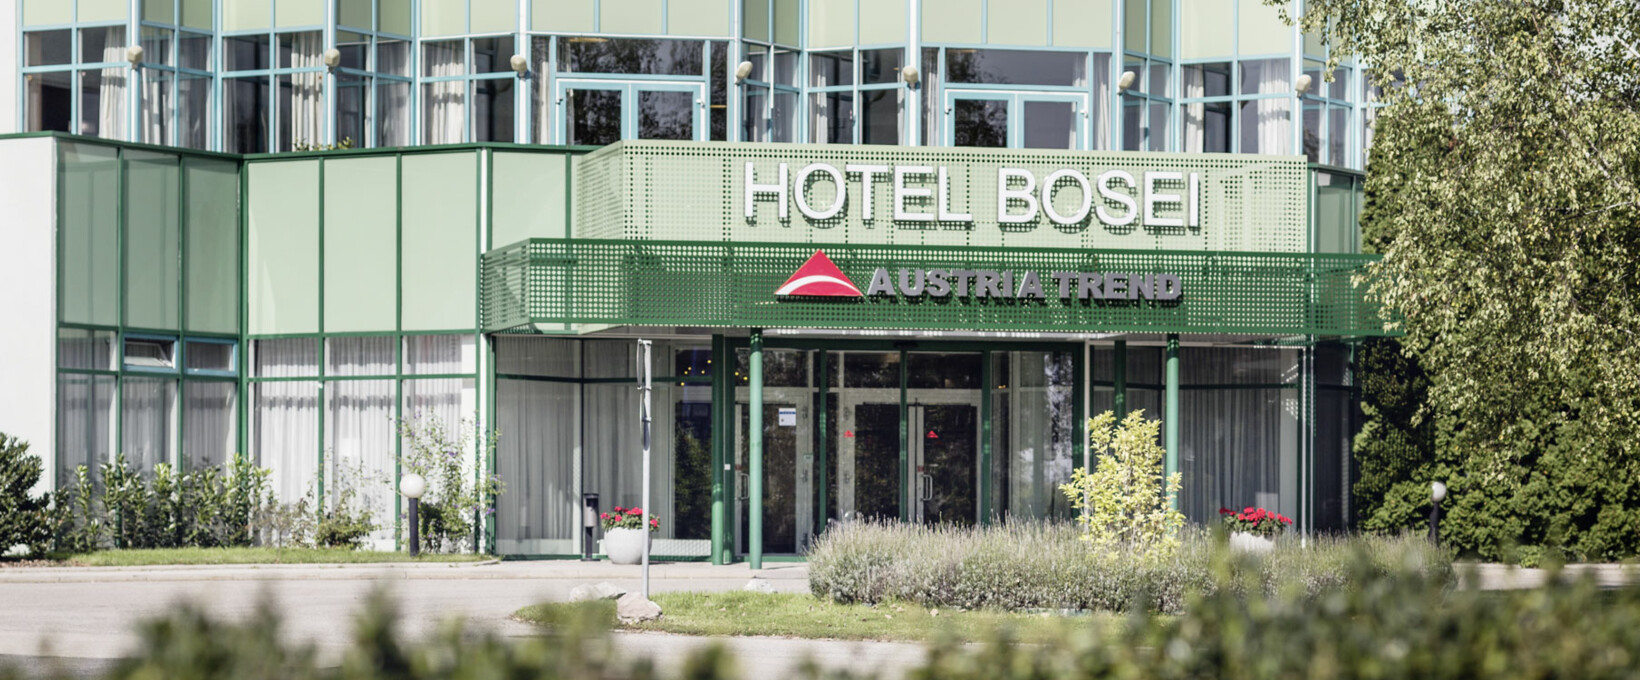 Entrance exterior view | Hotel Bosei in Vienna